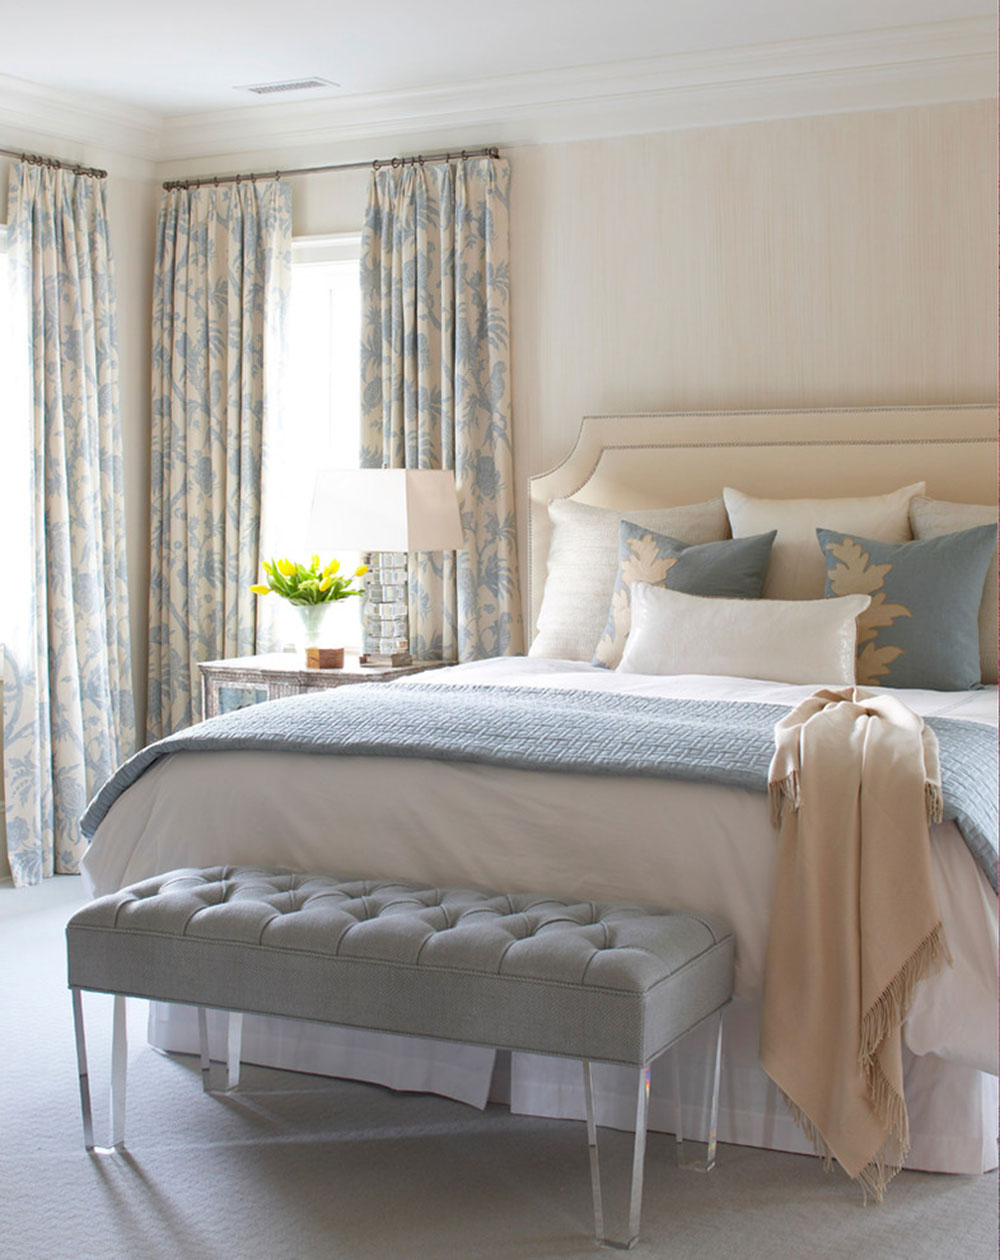 How To Keep Your Bedroom Cold In The Summer15 How To Keep Your Bedroom In The Summer